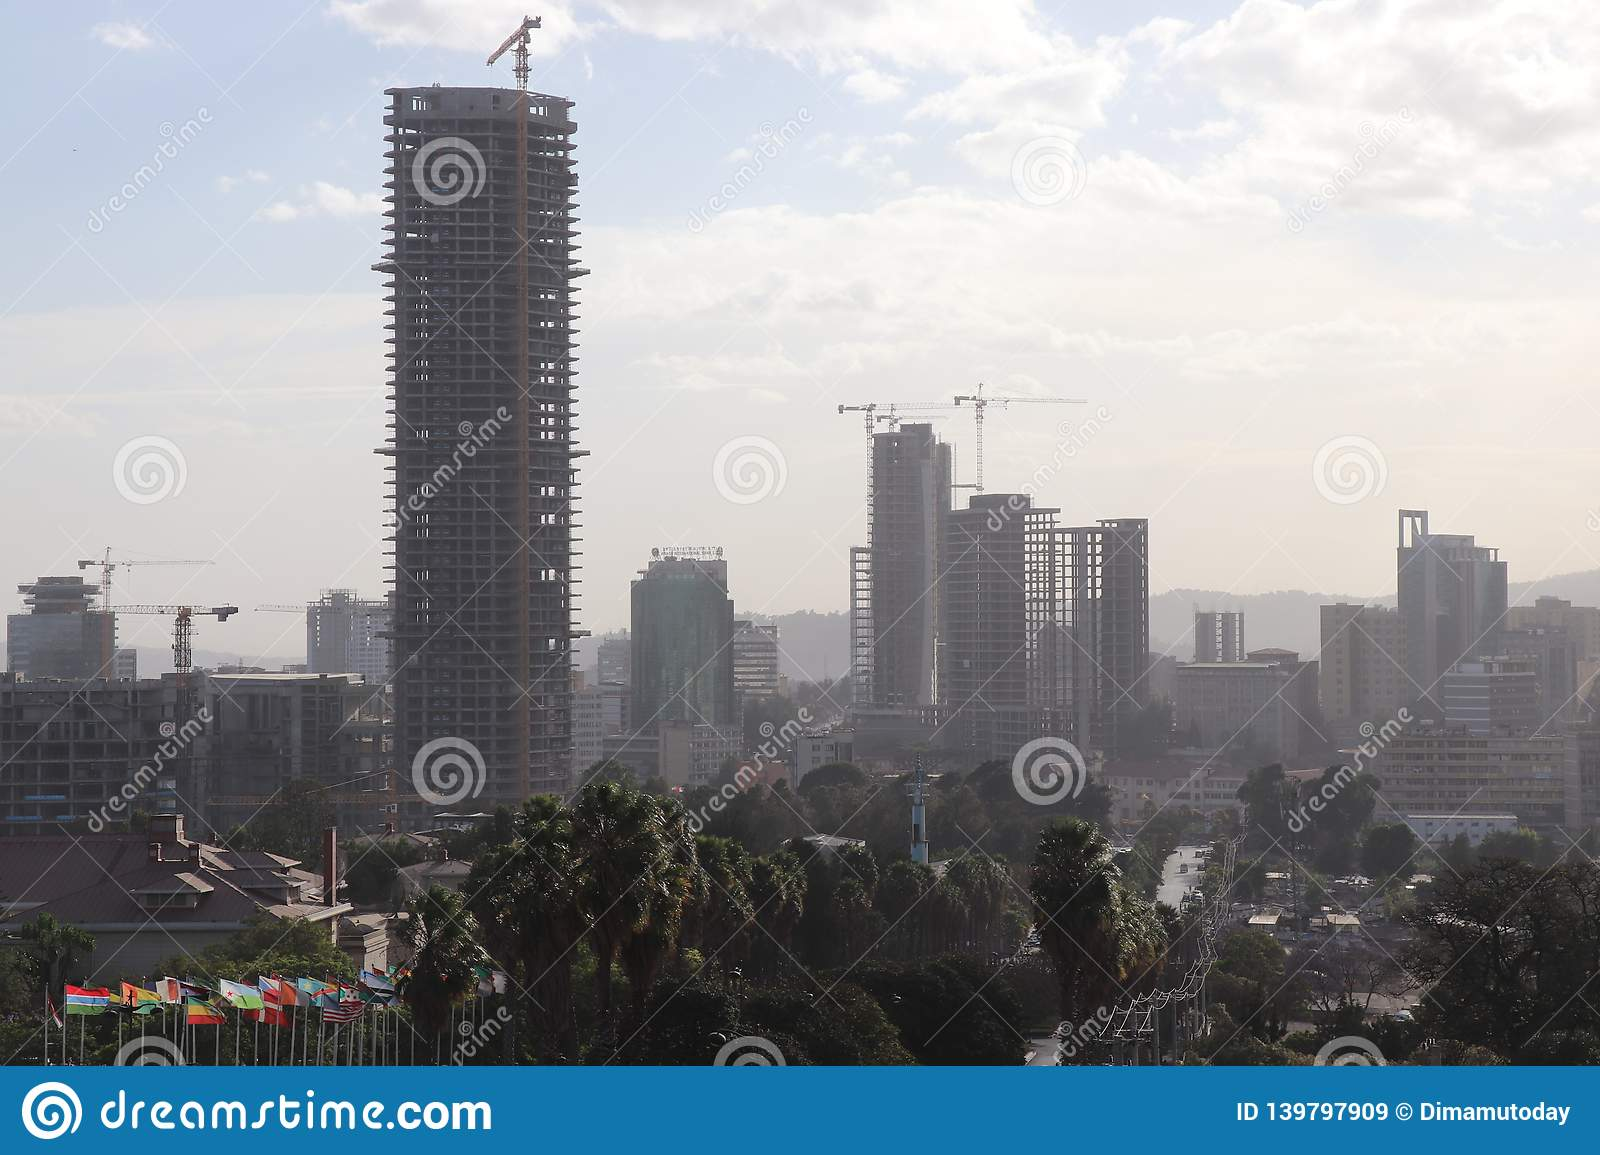 New Buildings Under Construction In Addis Ababa, Ethiopia